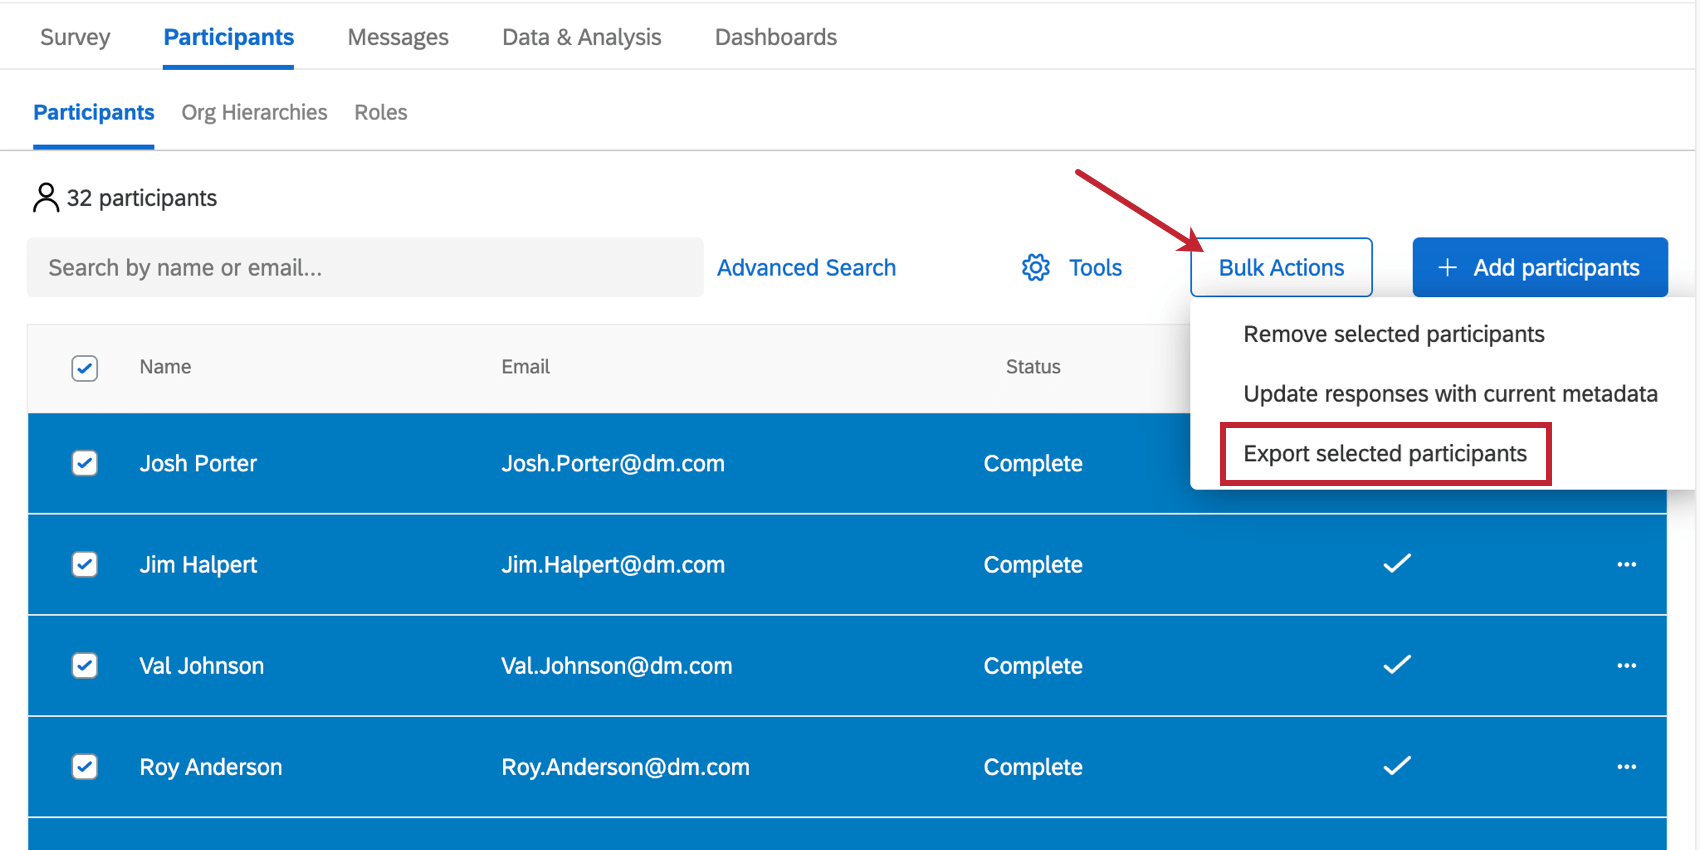 Image of selected participants and bulk actions button